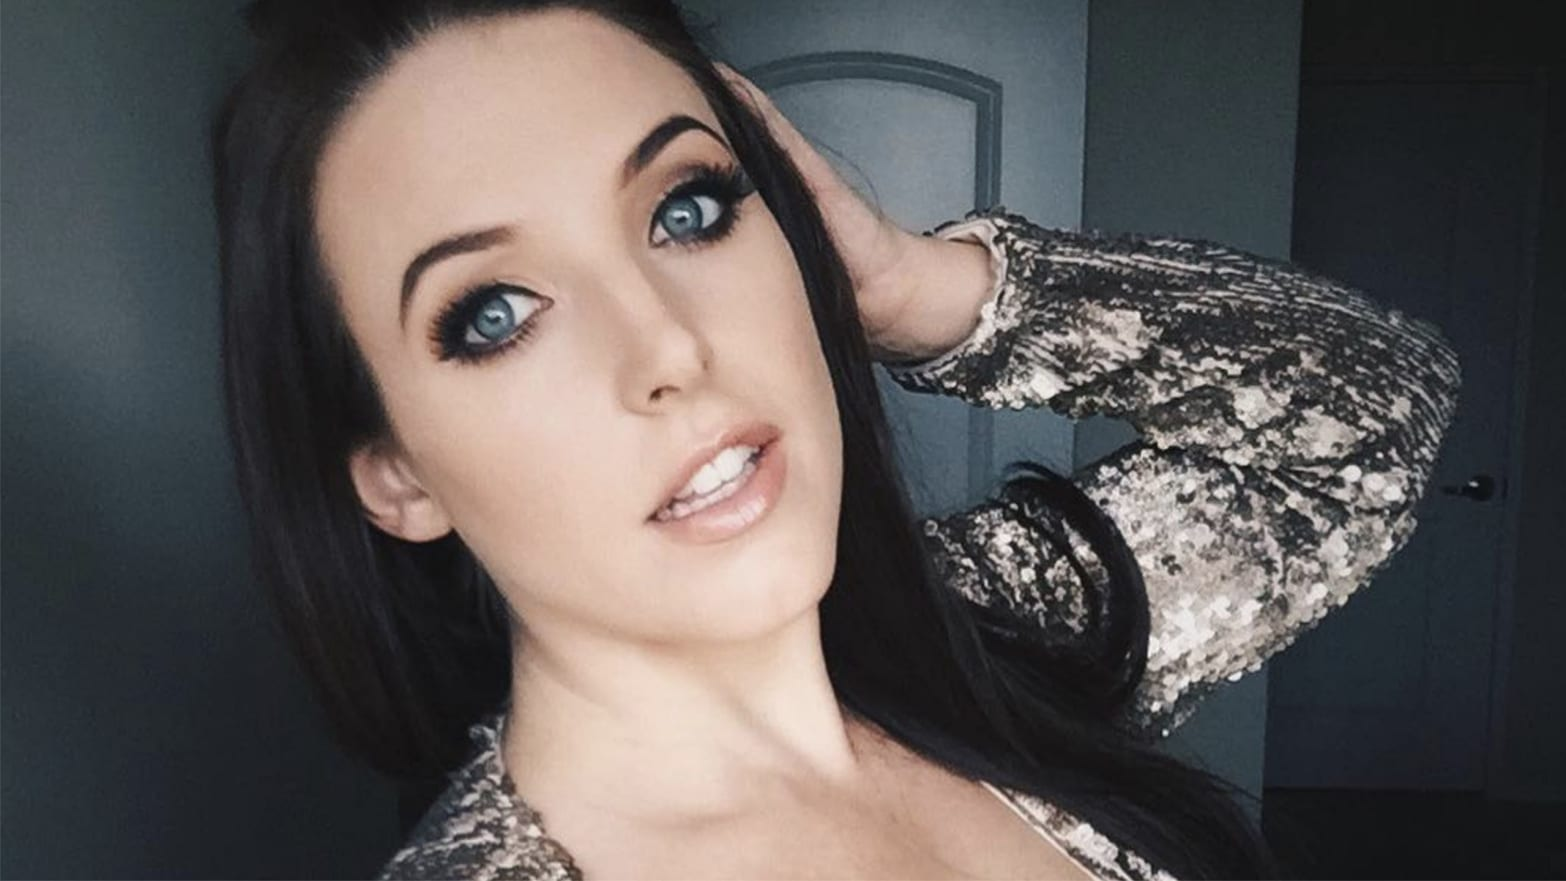 Angela White Pictures meet the porn star turned academic who's revolutionizing the